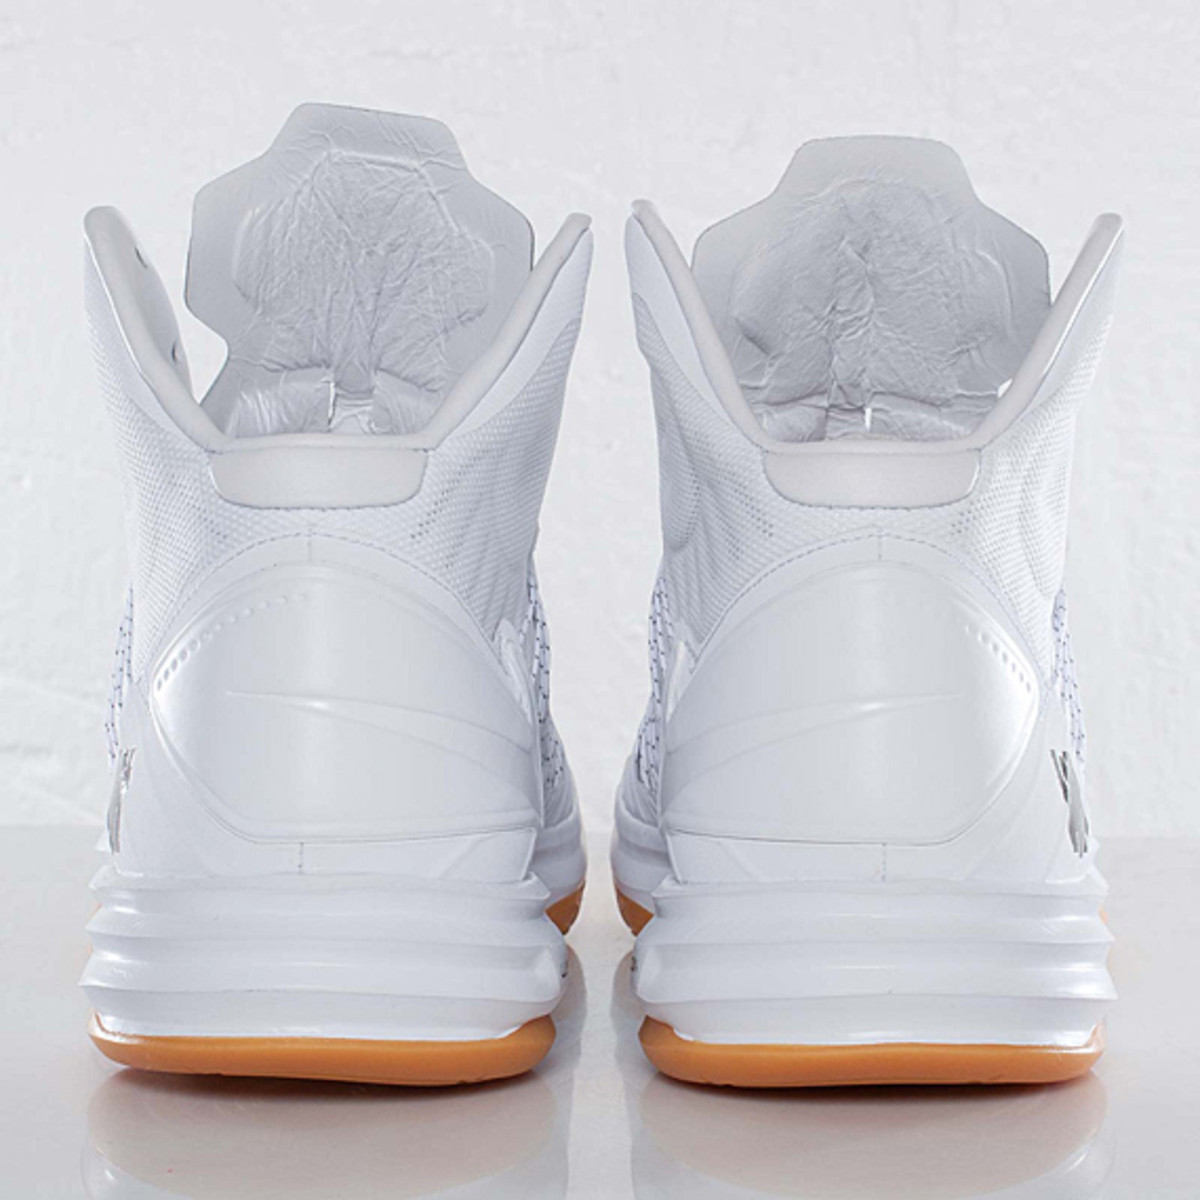 undefeated-nike-hyperdunk-bring-back-pack-598471-110-05